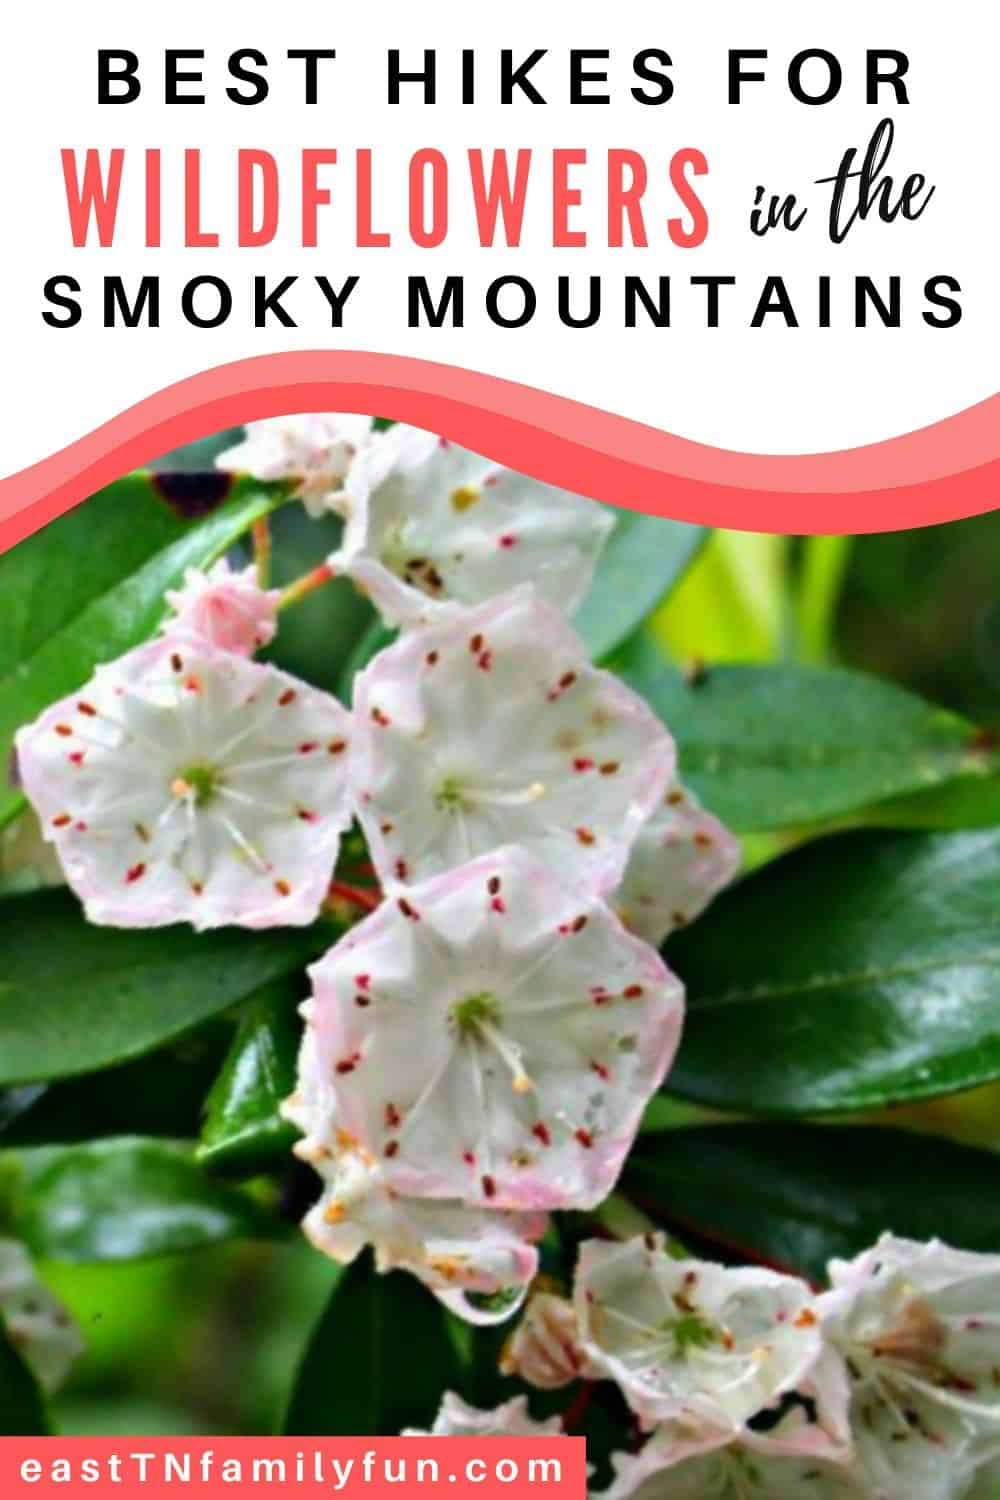 Smoky Mountain Wild Flower Hikes